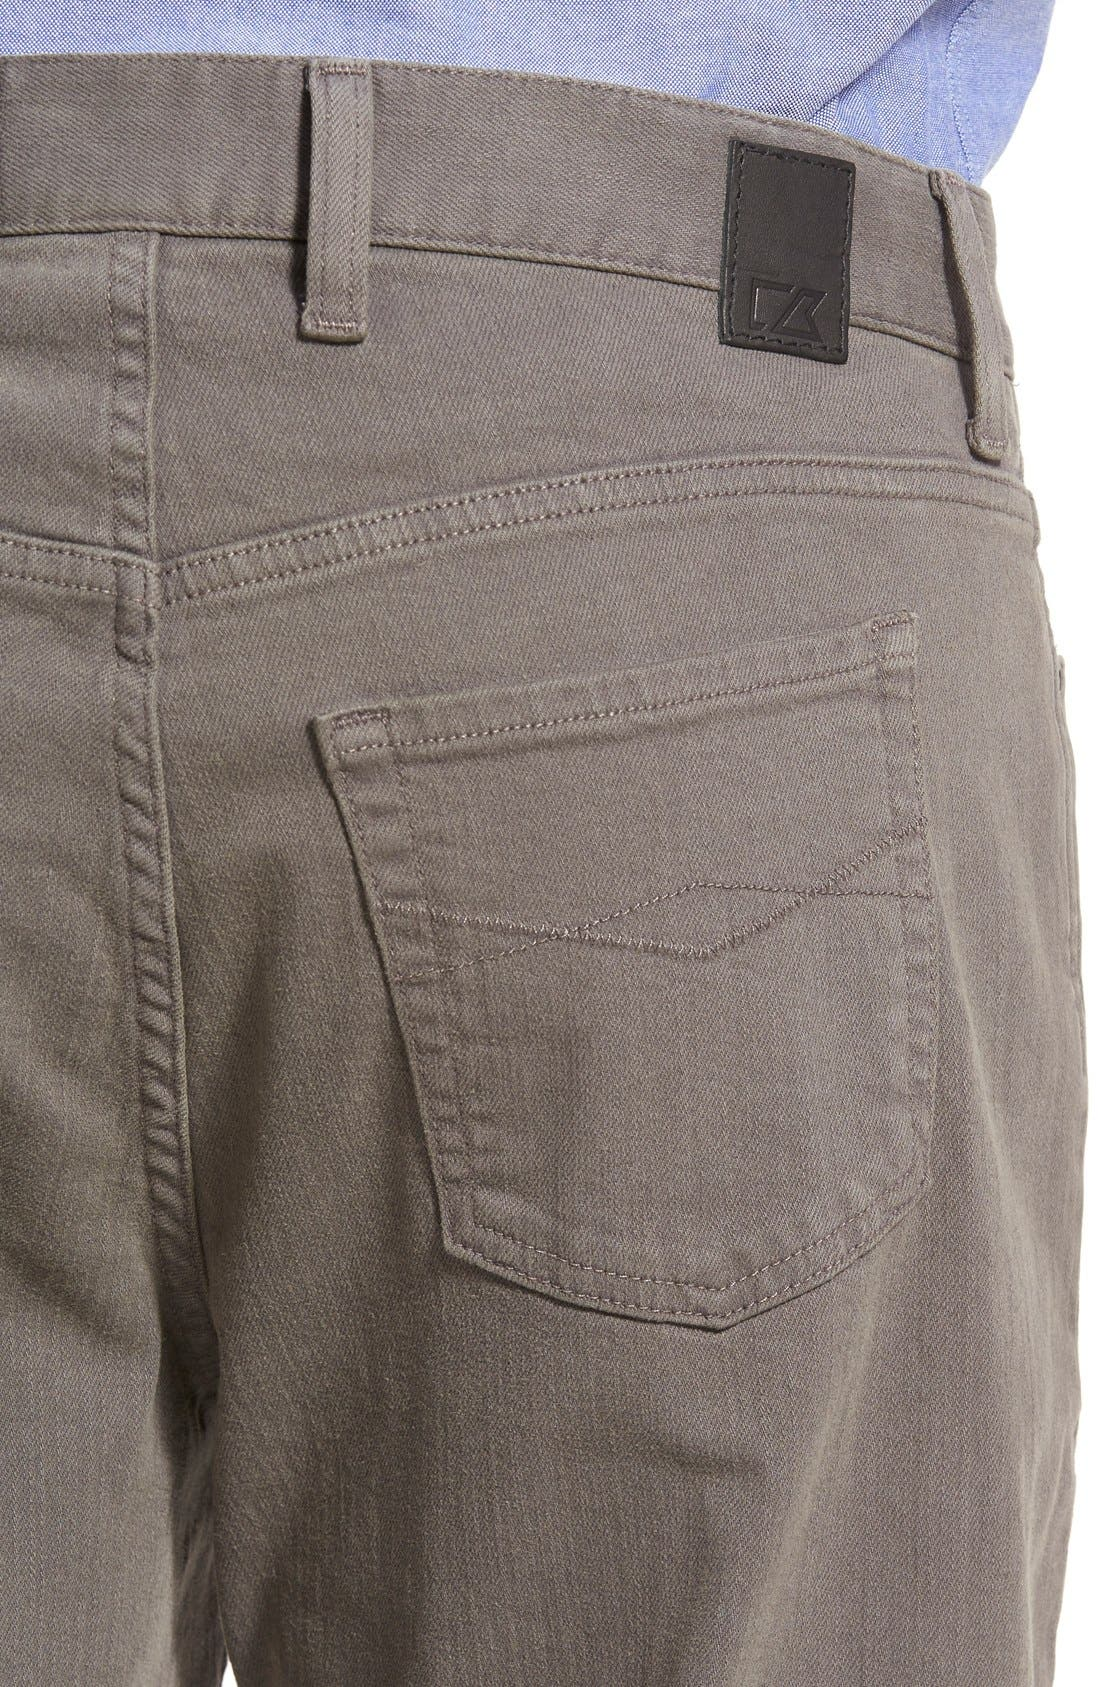 'Greenwood' Relaxed Fit Jeans,                             Alternate thumbnail 11, color,